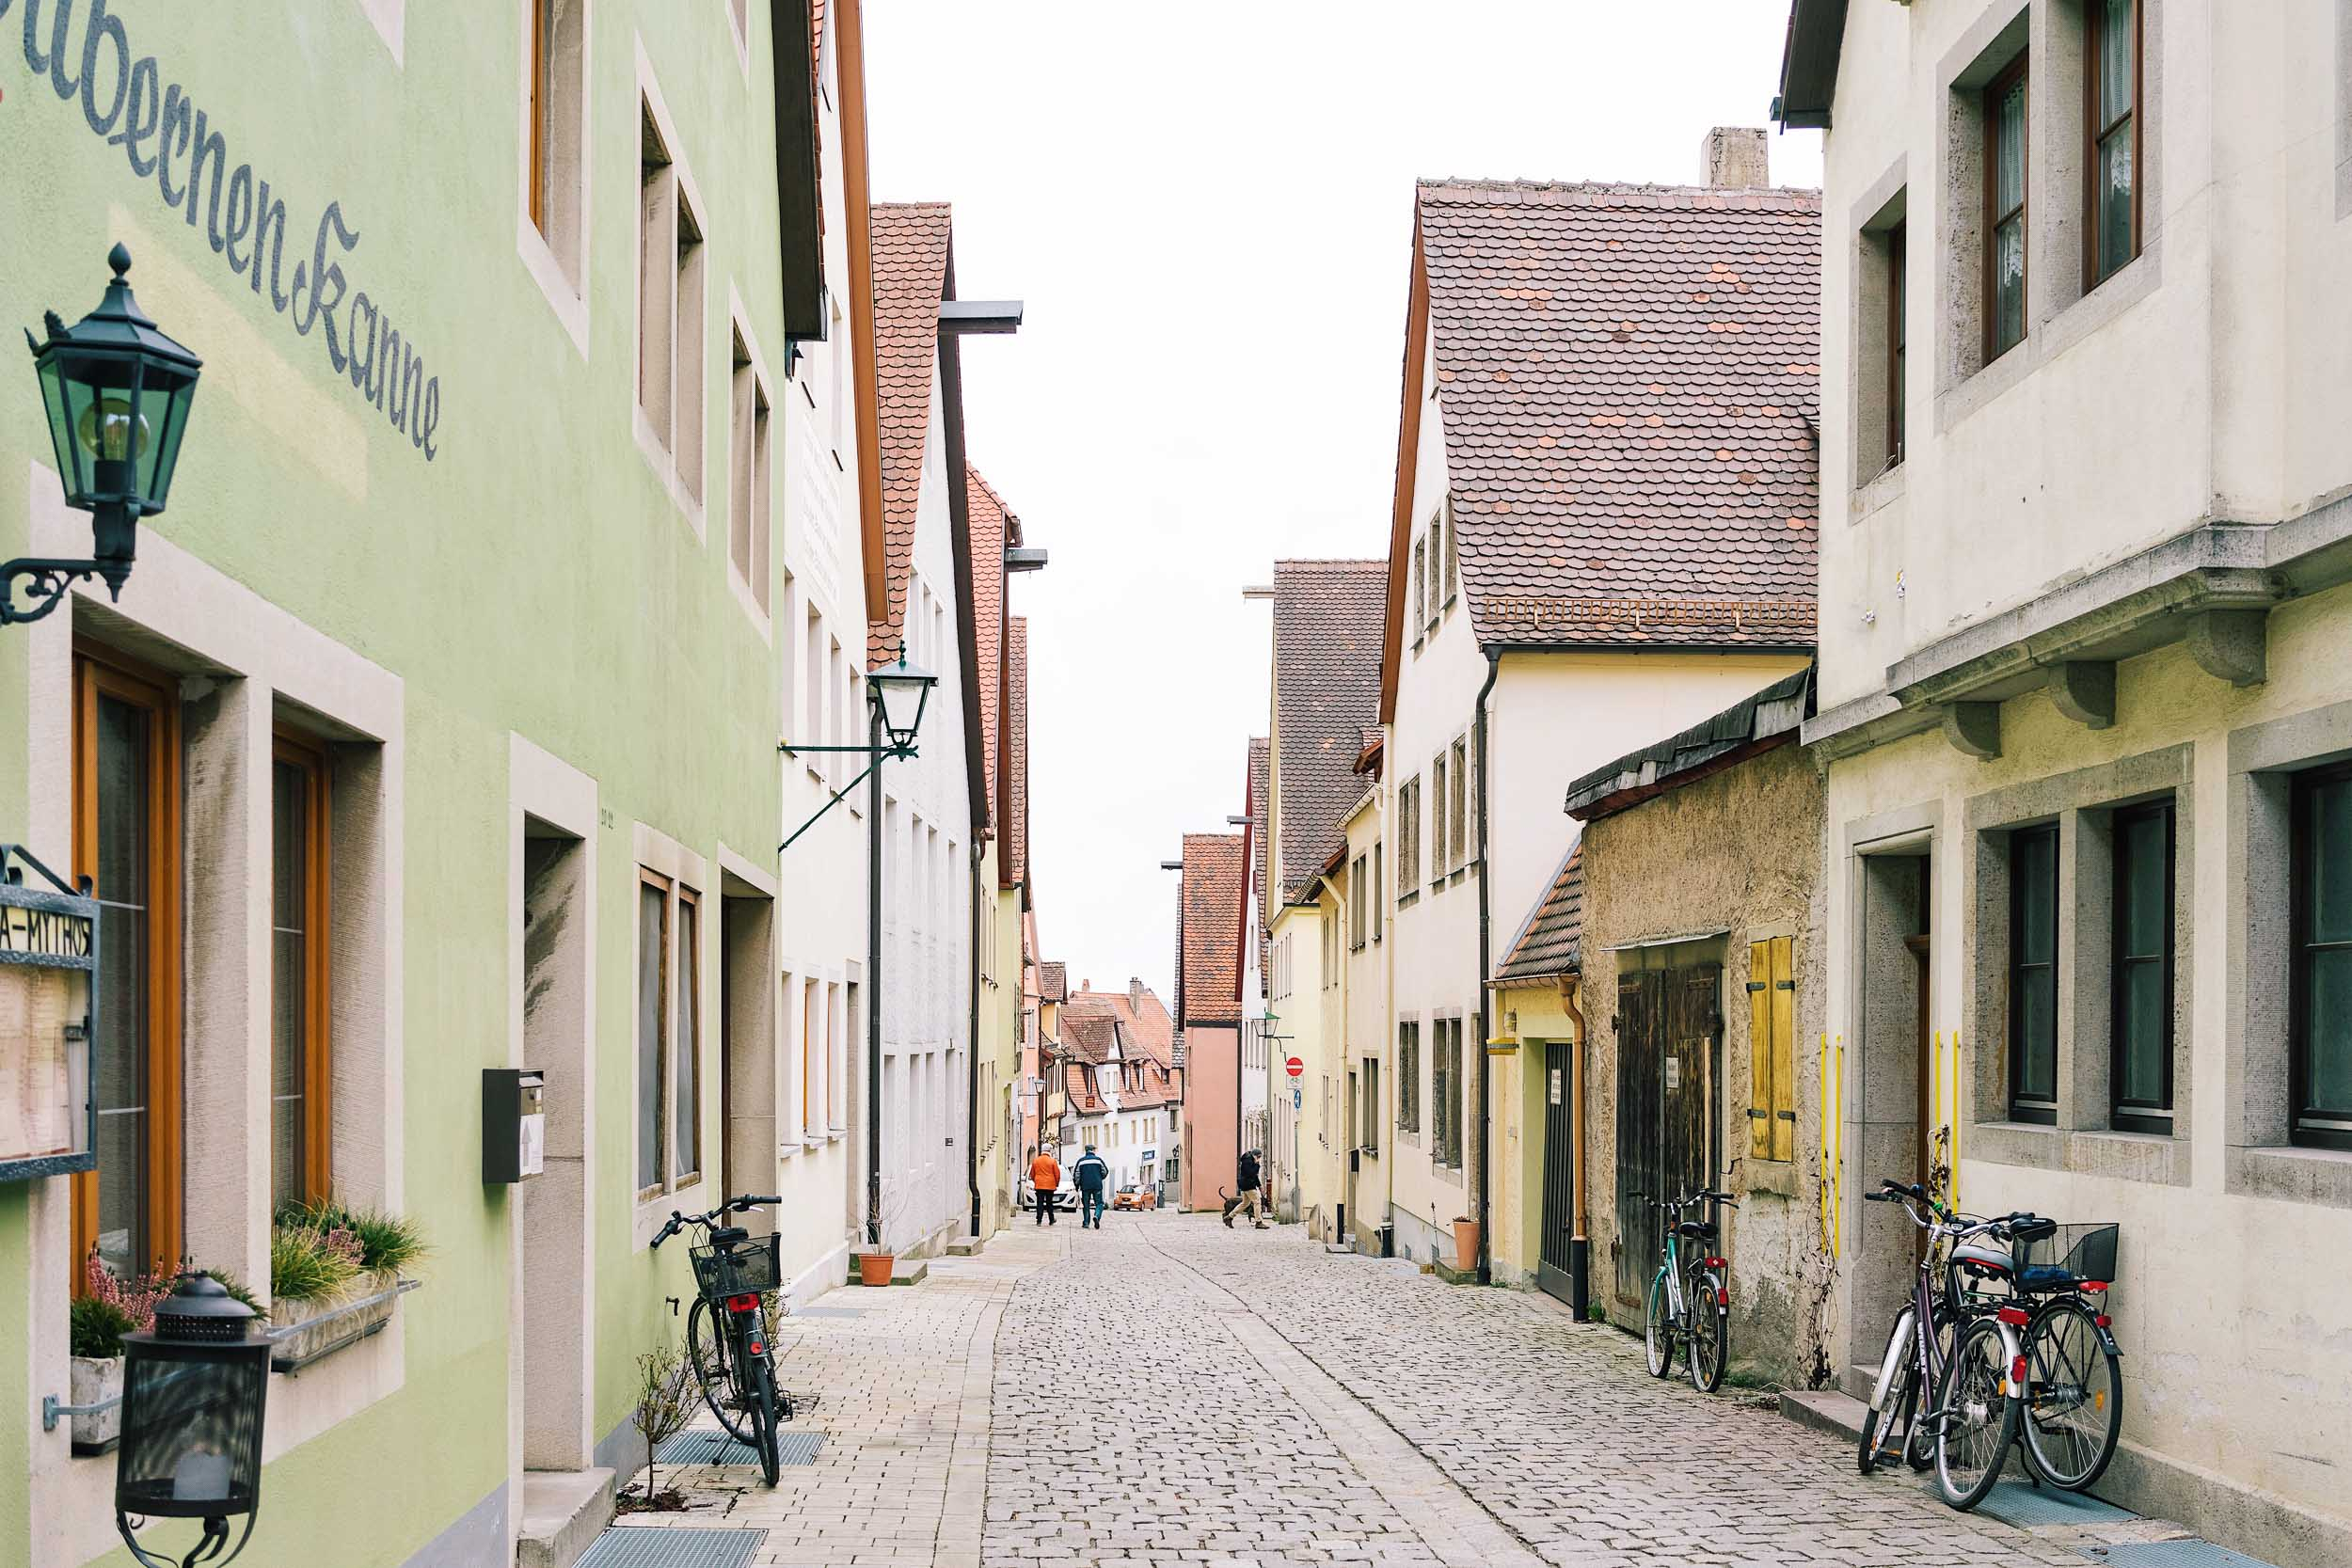 The charming town of Rothenburg